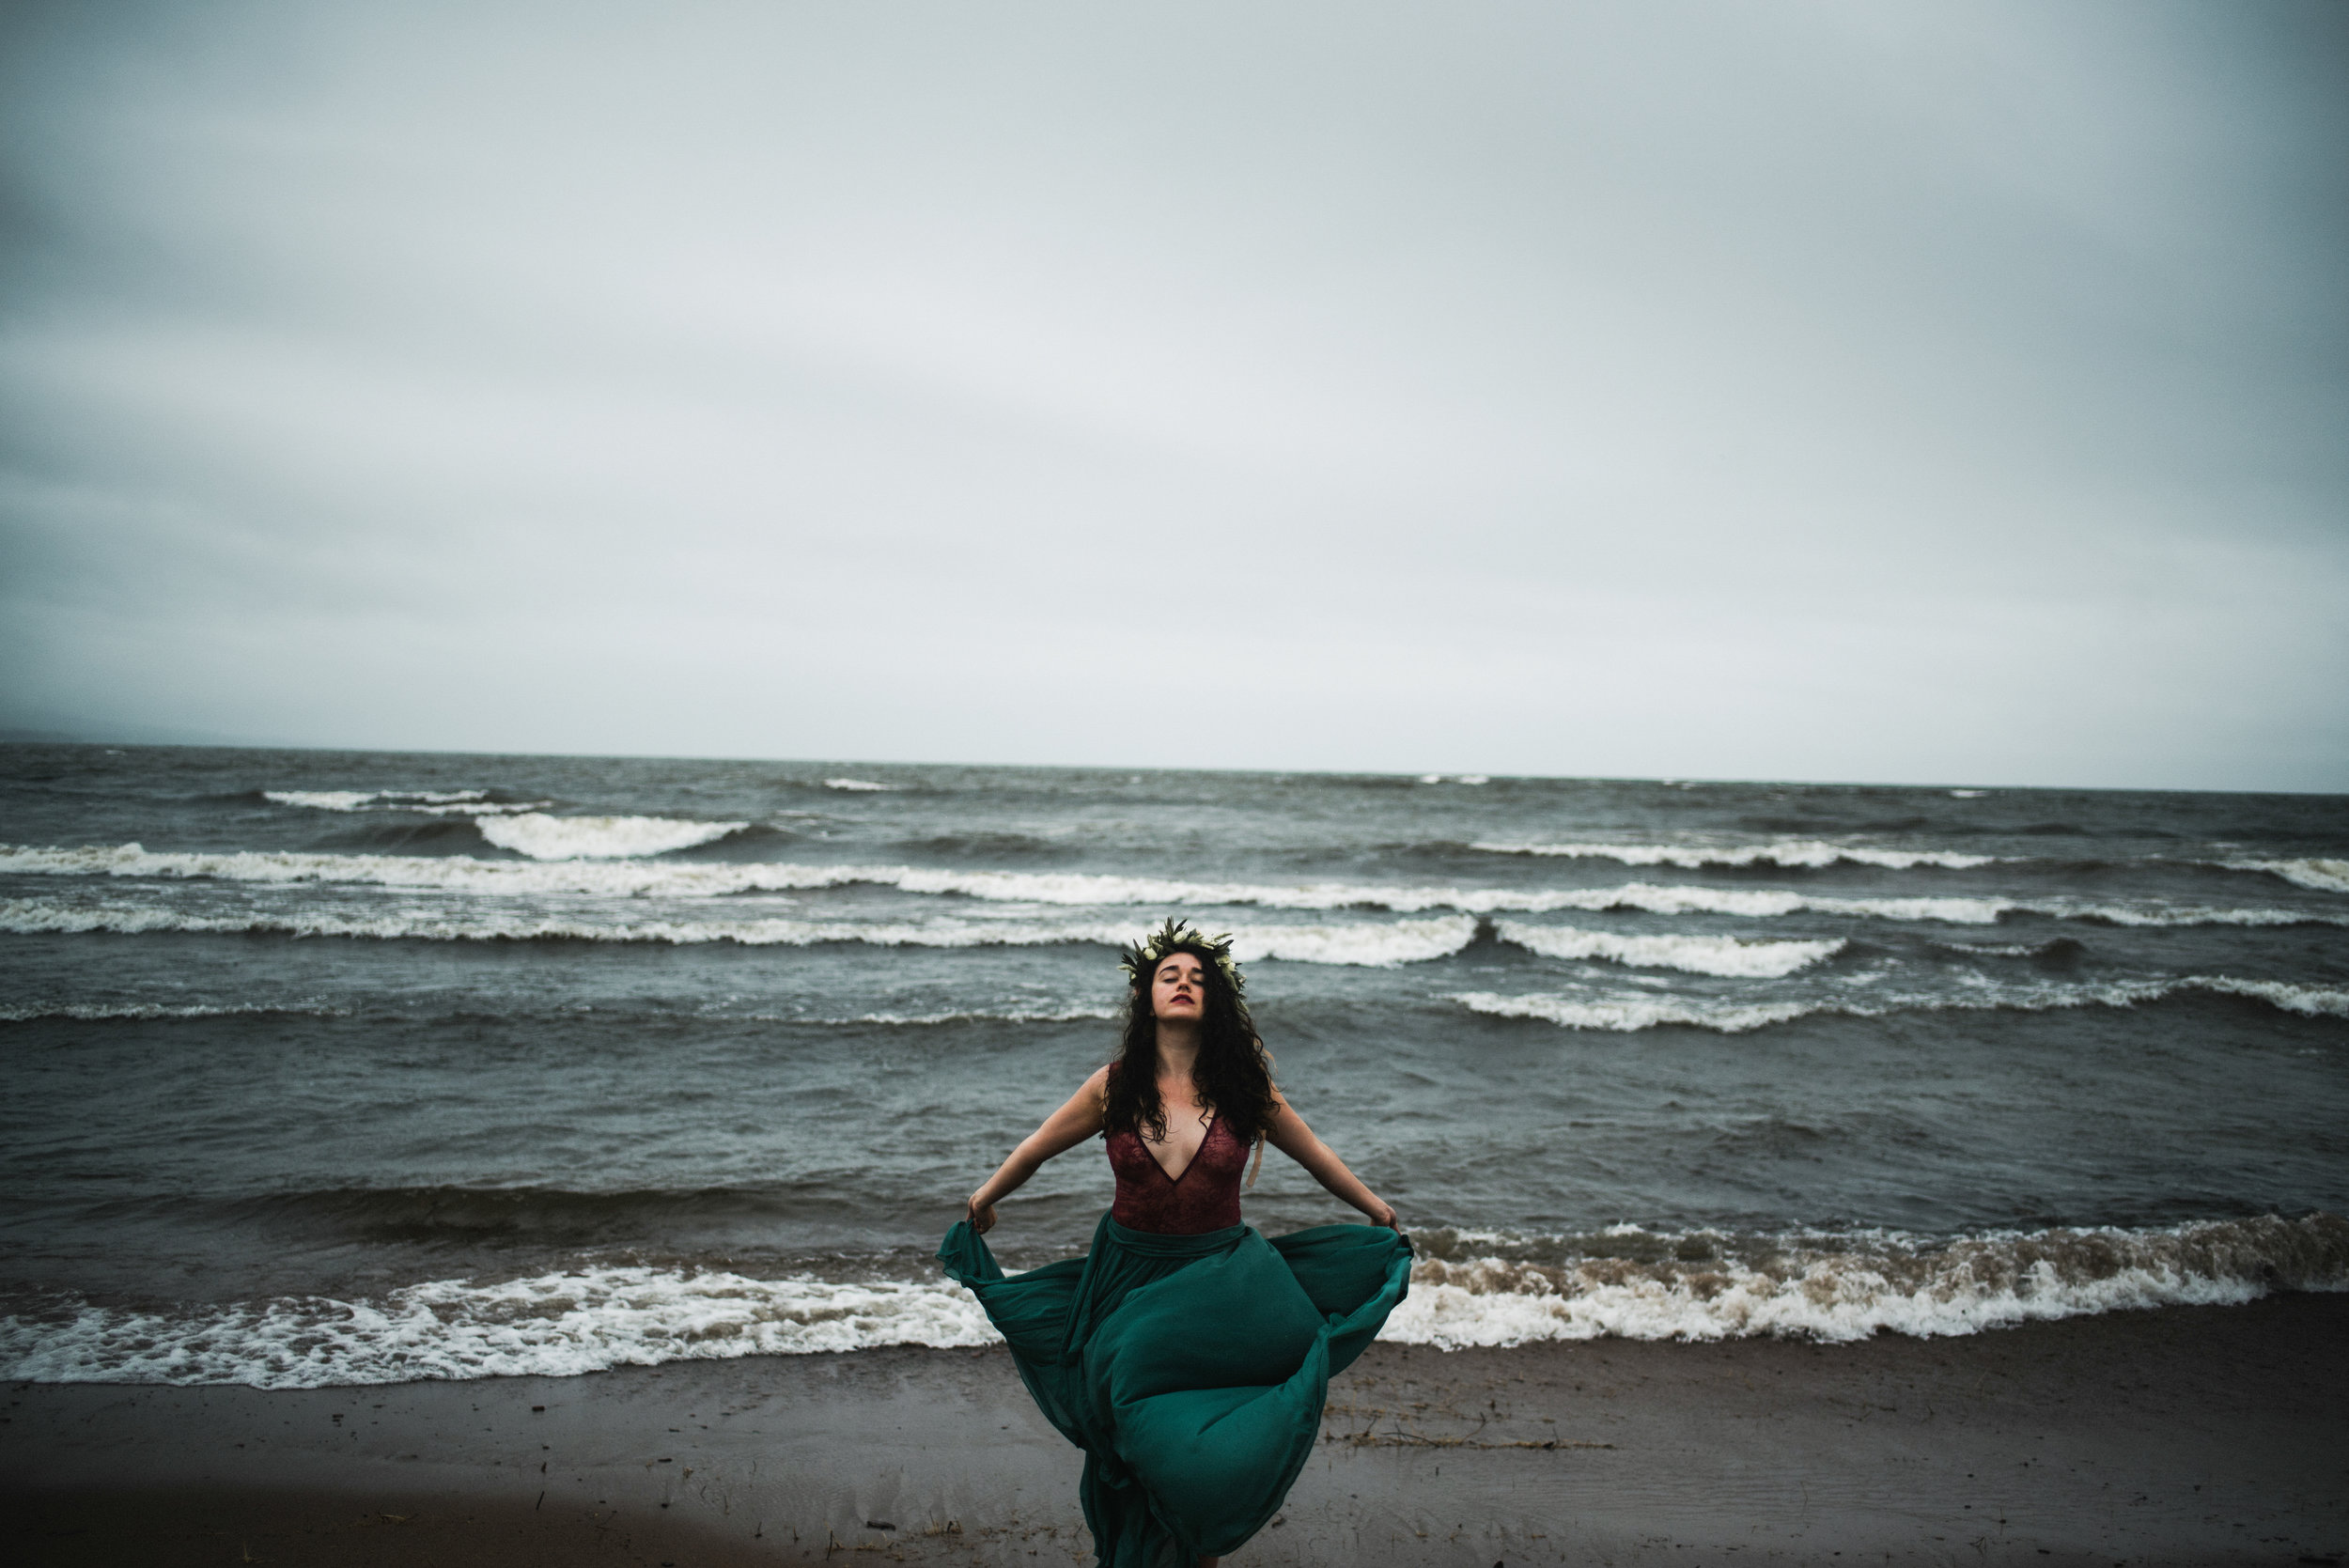 Clare+Boudoir+Storming+Lake+Superior+Boudoir+Session+Duluth+Minnesota+White+Sails+Creative.jpg